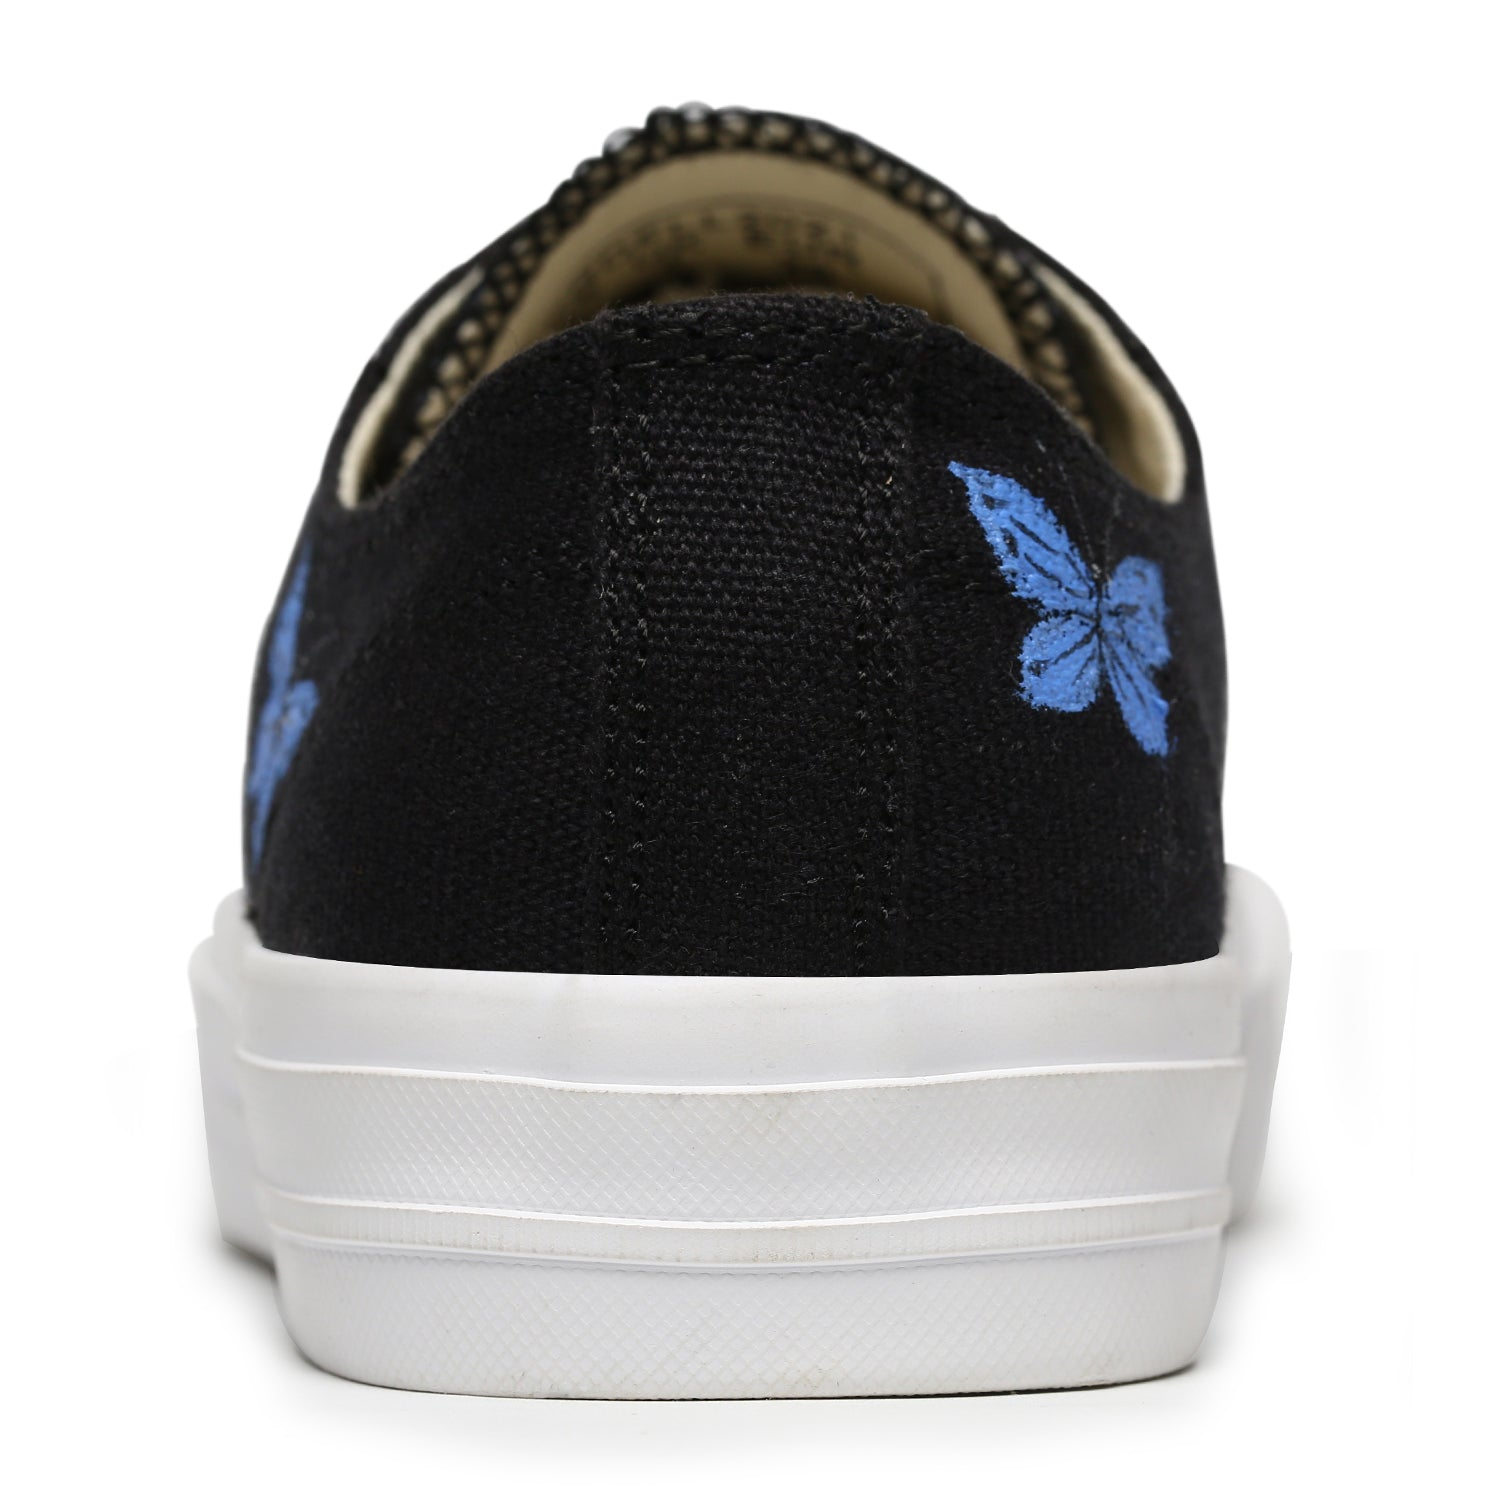 Women's Hand Painted Canvas Shoes Art Painted Canvas Flats Sneakers